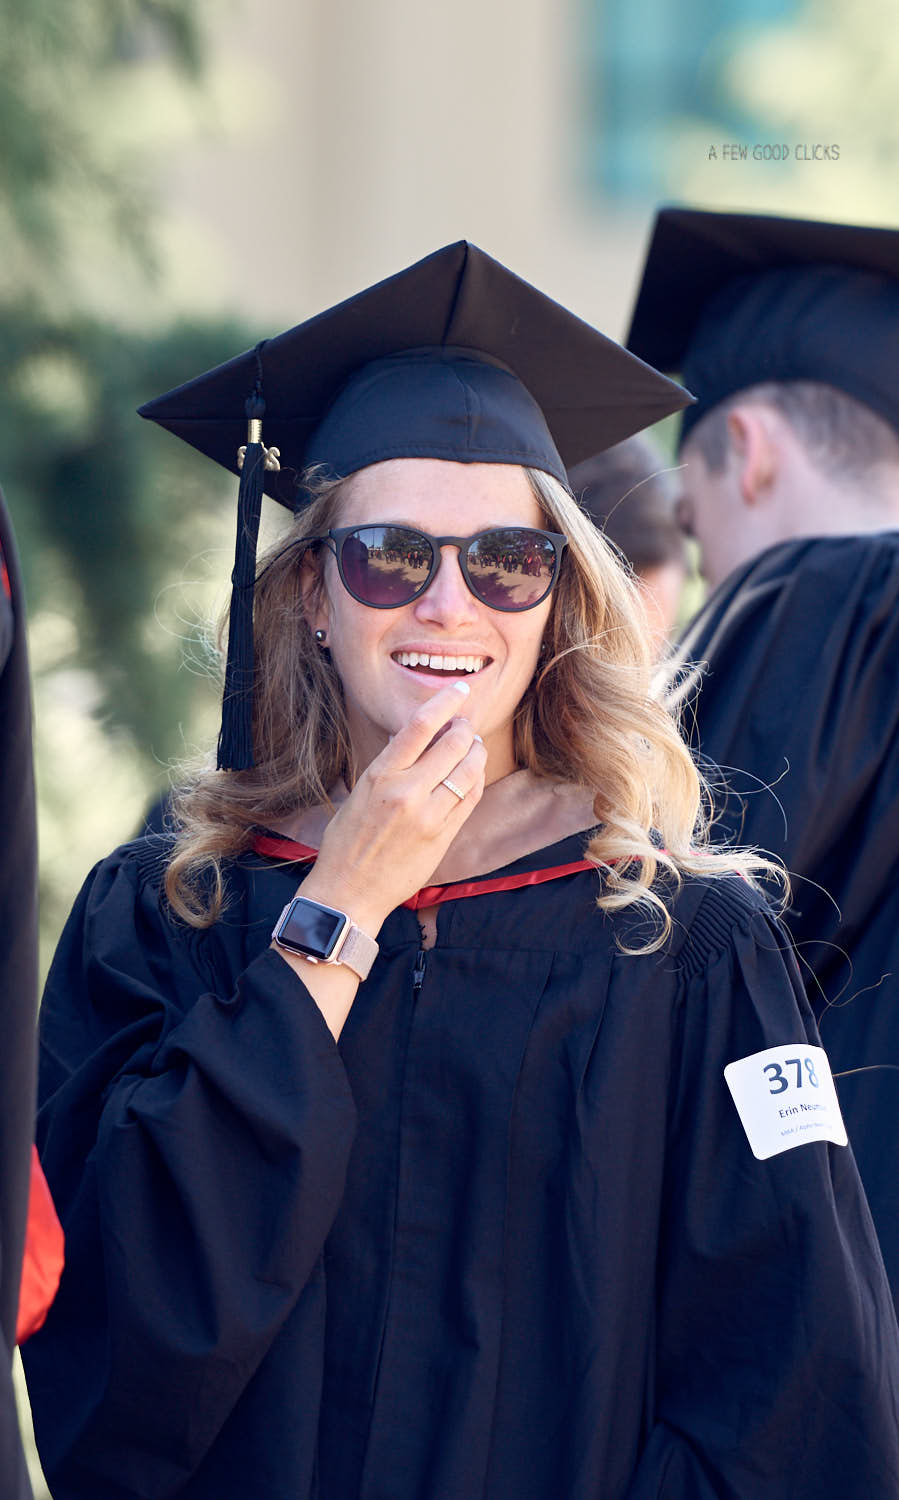 stanford-graduation-ceremony-photography-by-a-few-good-clicks 31.jpg